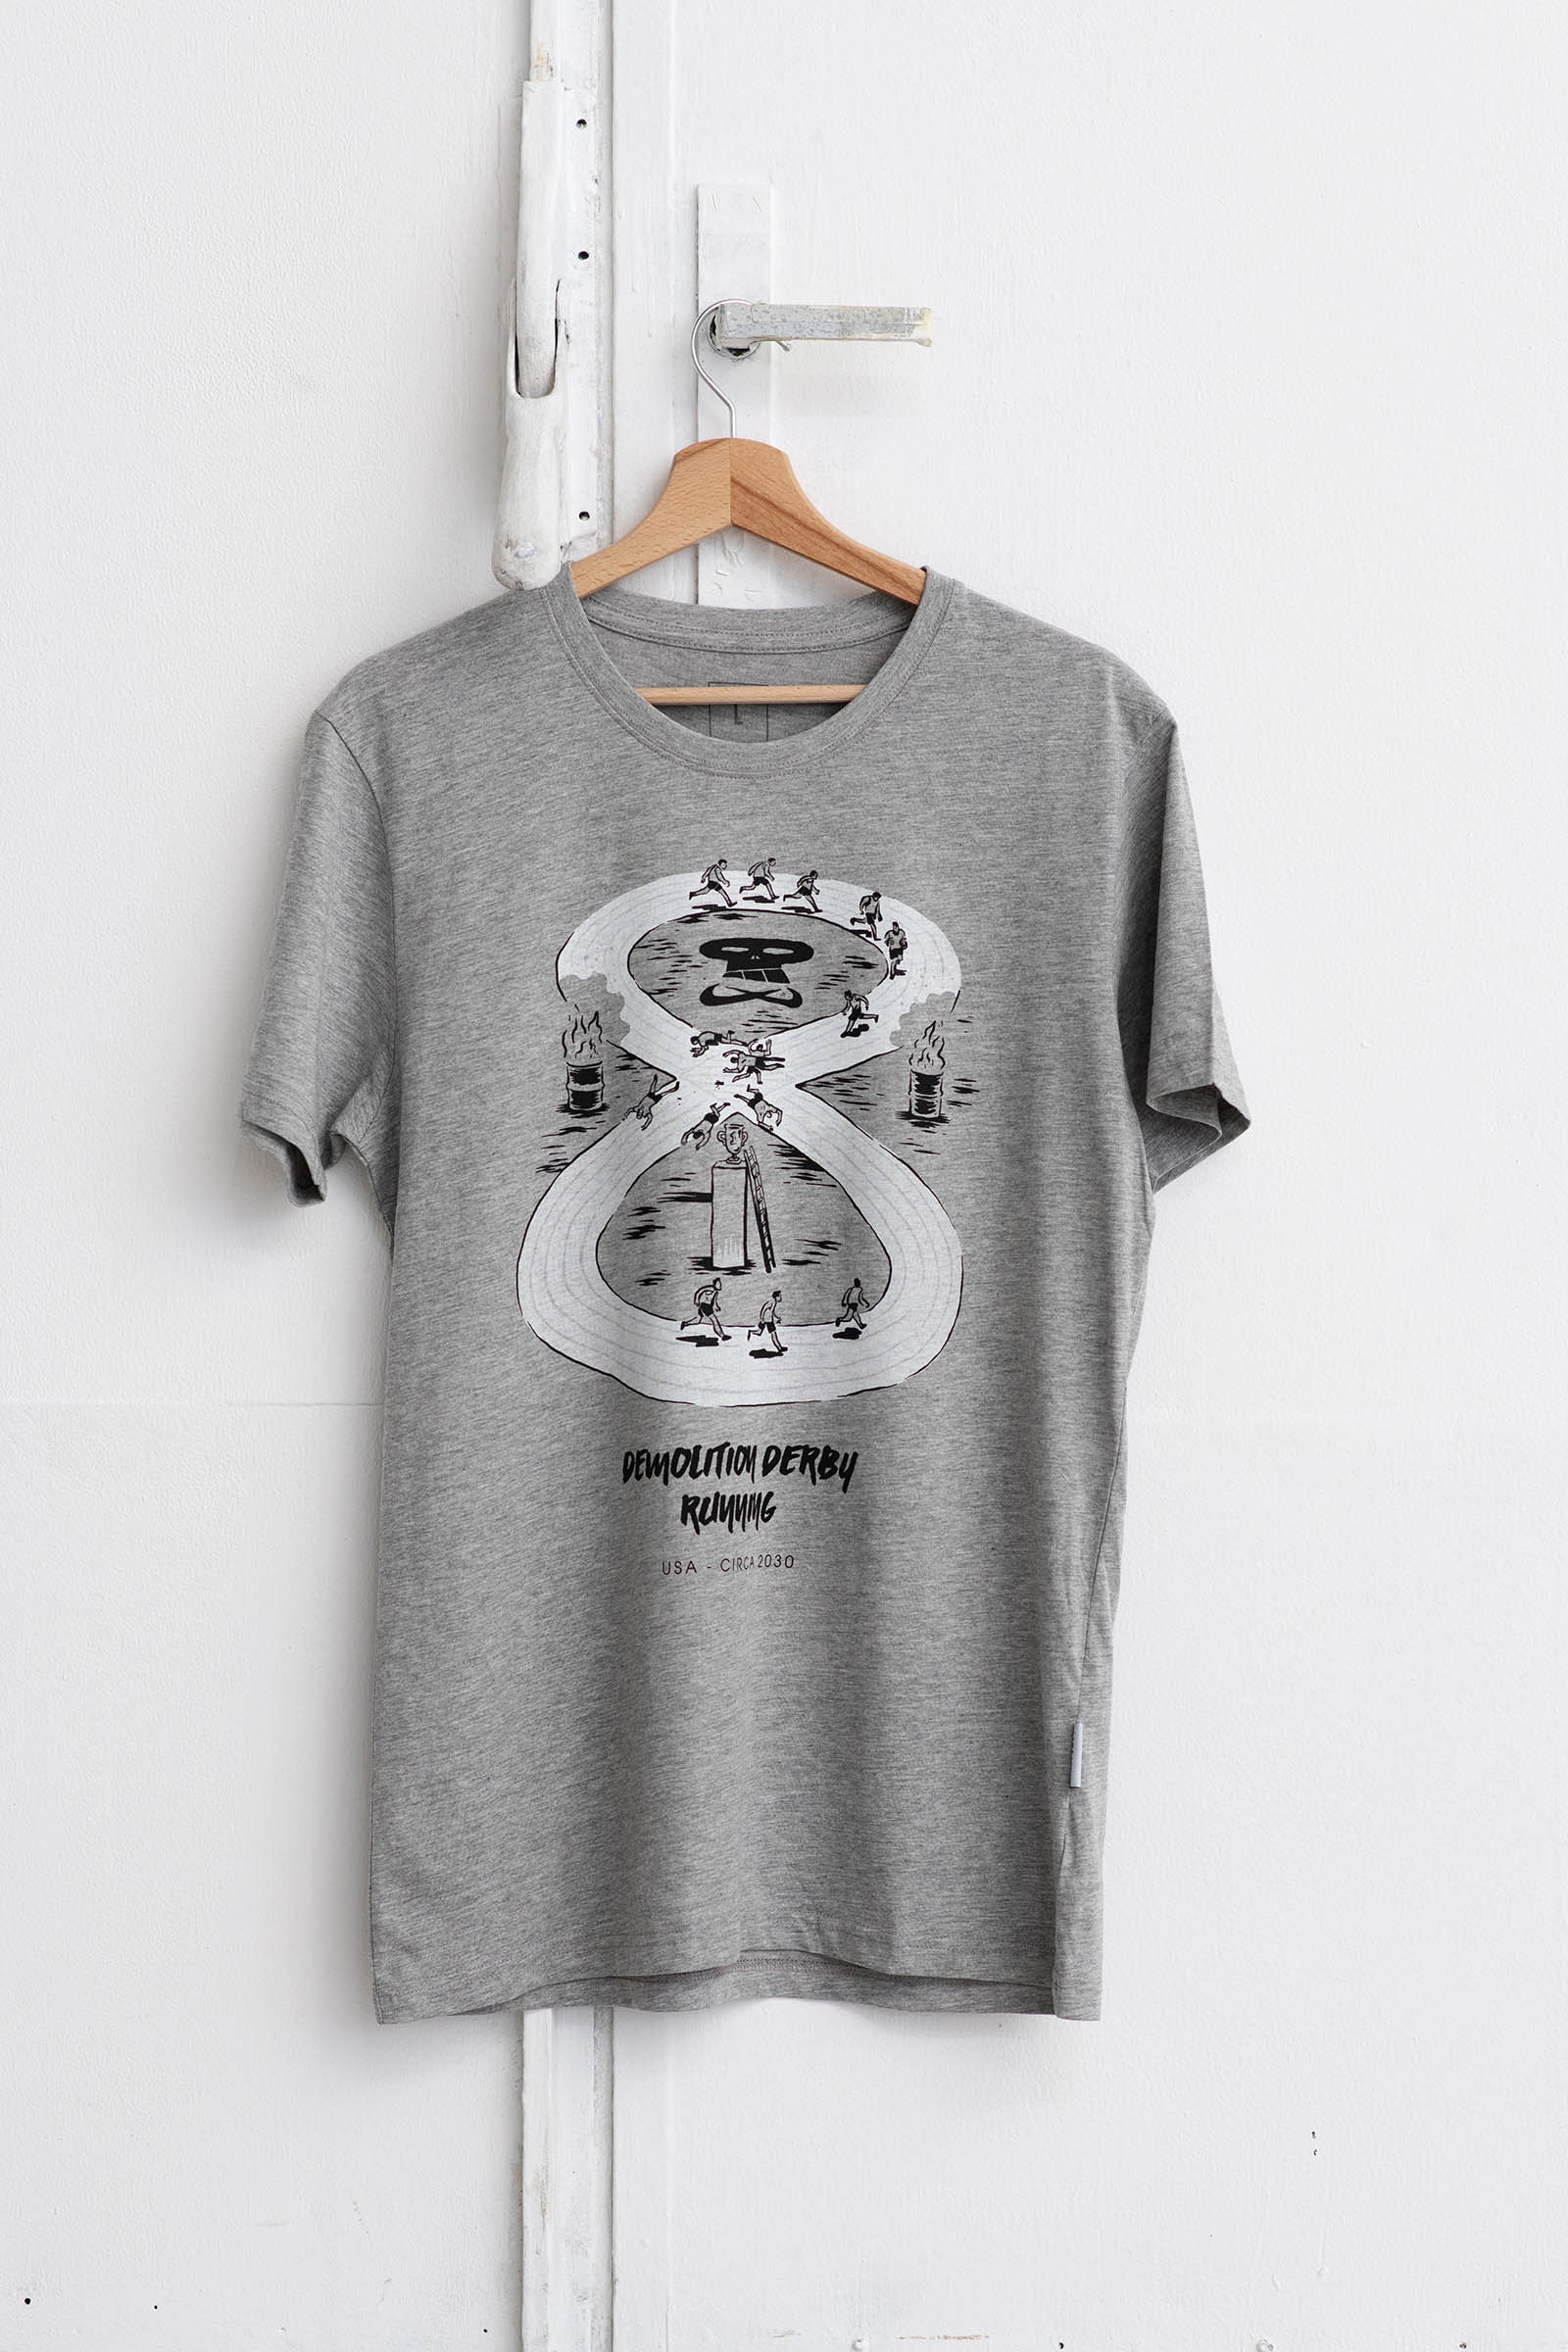 t-shirt for men Demolition derby grey melange